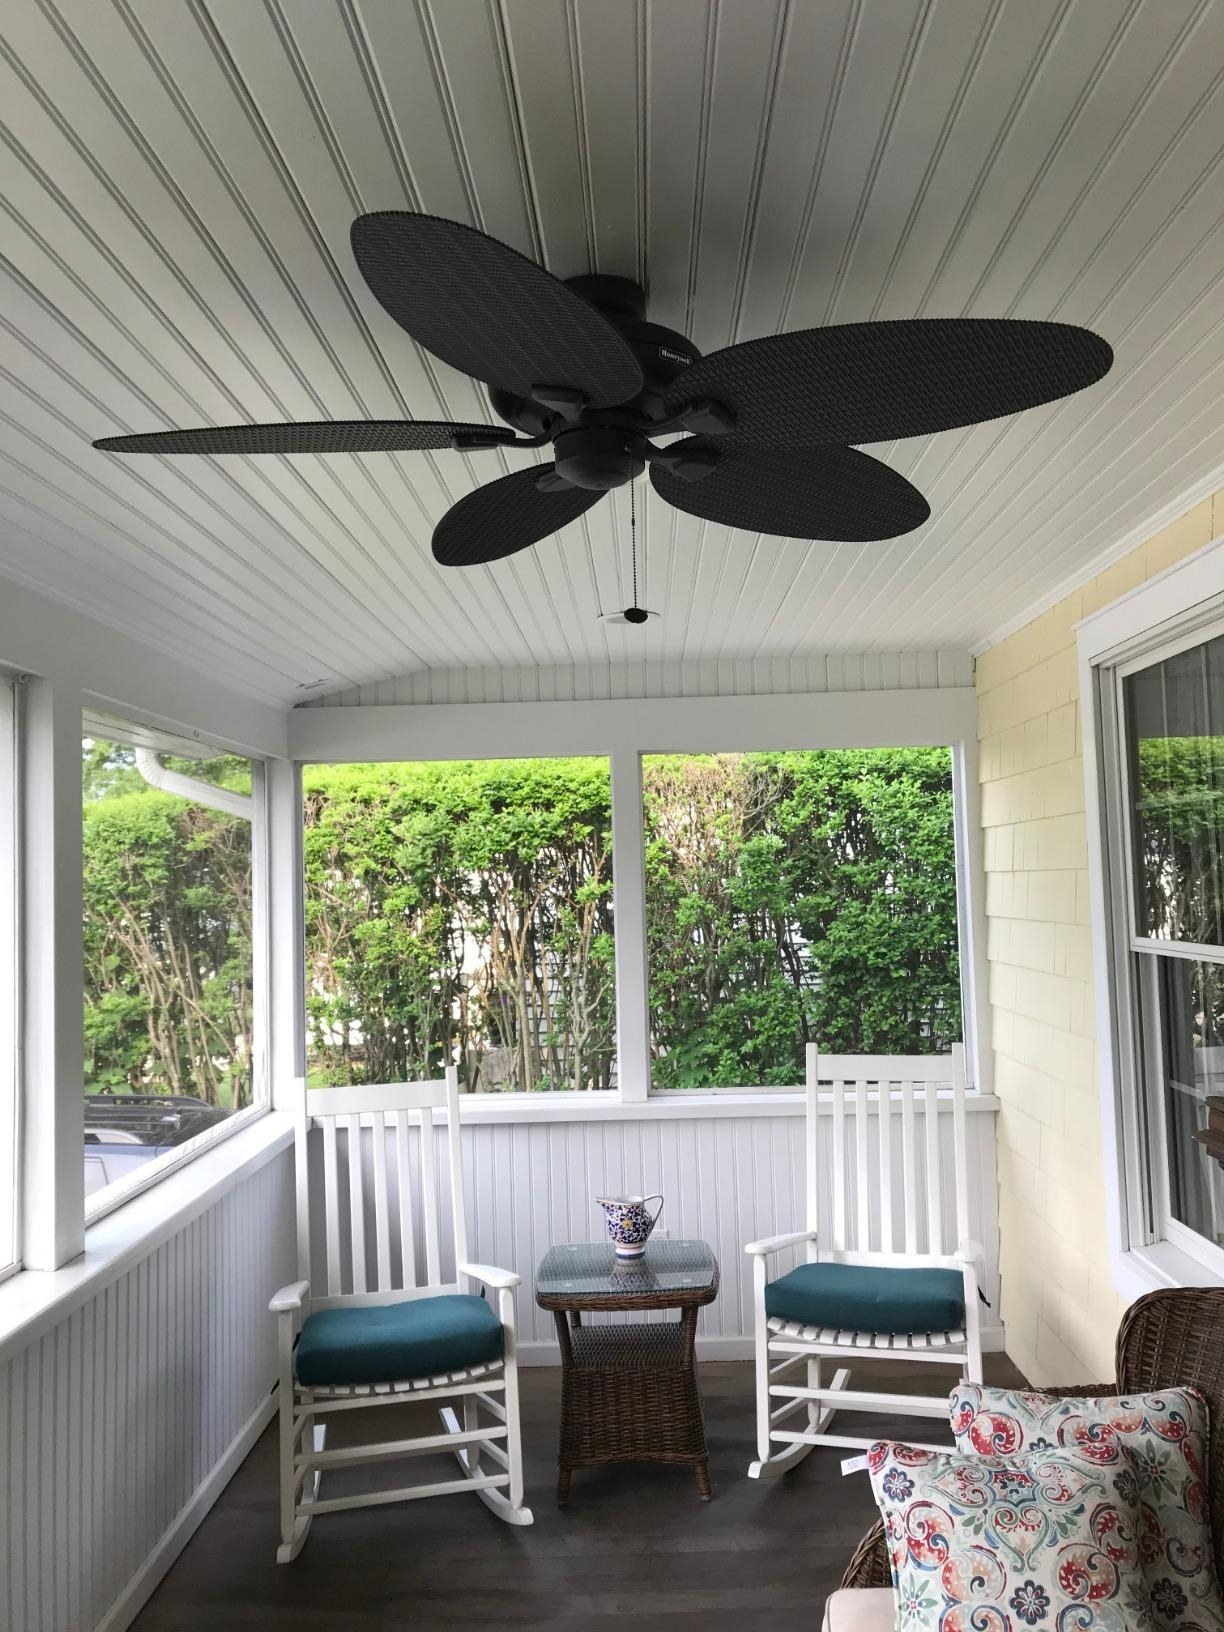 The black fan on a low-ceiling porch